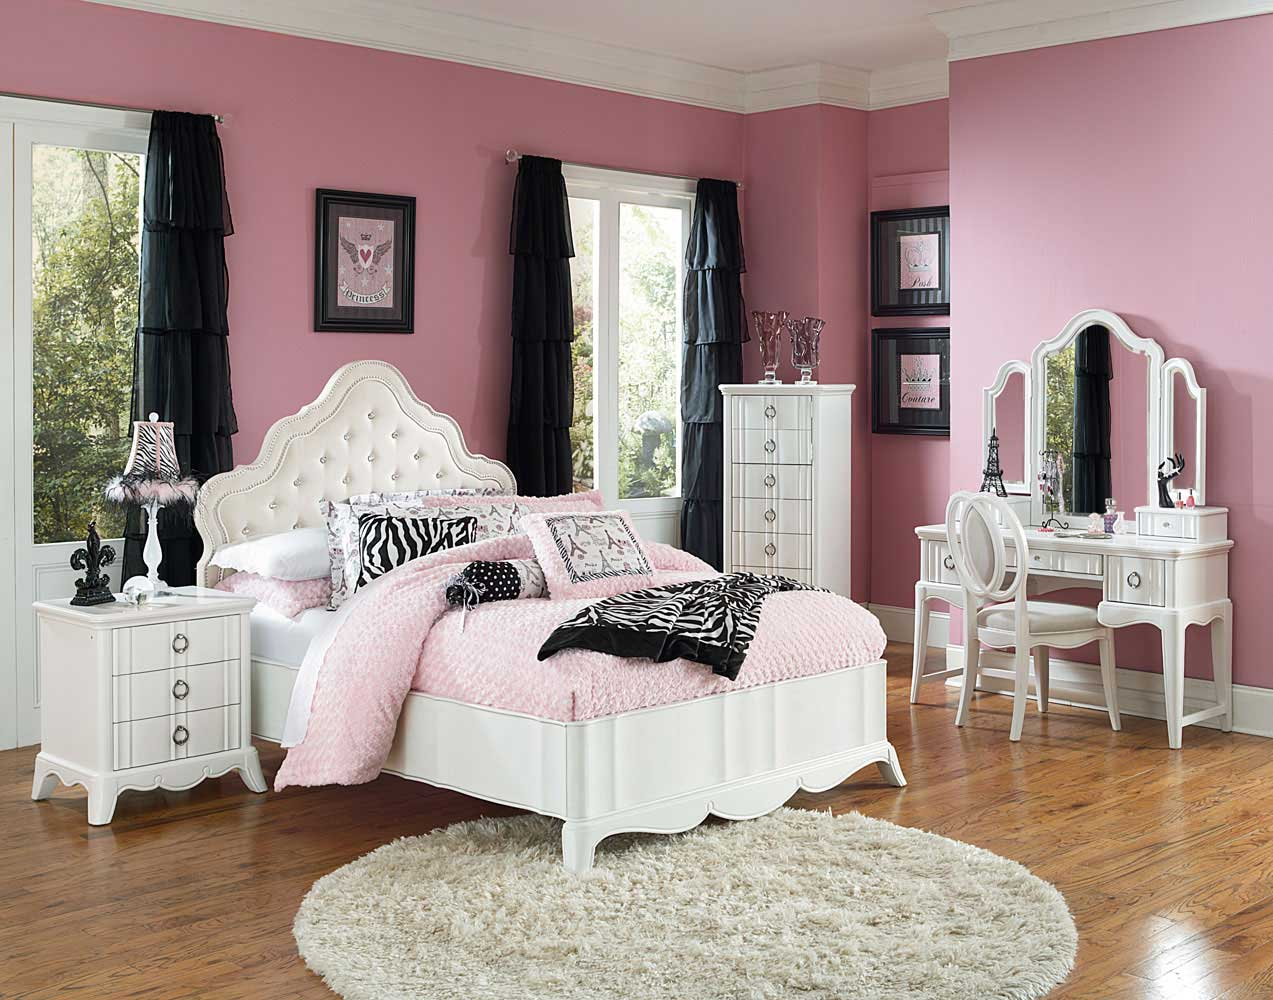 gabrielle island upholstered bedroom set snow white decor south